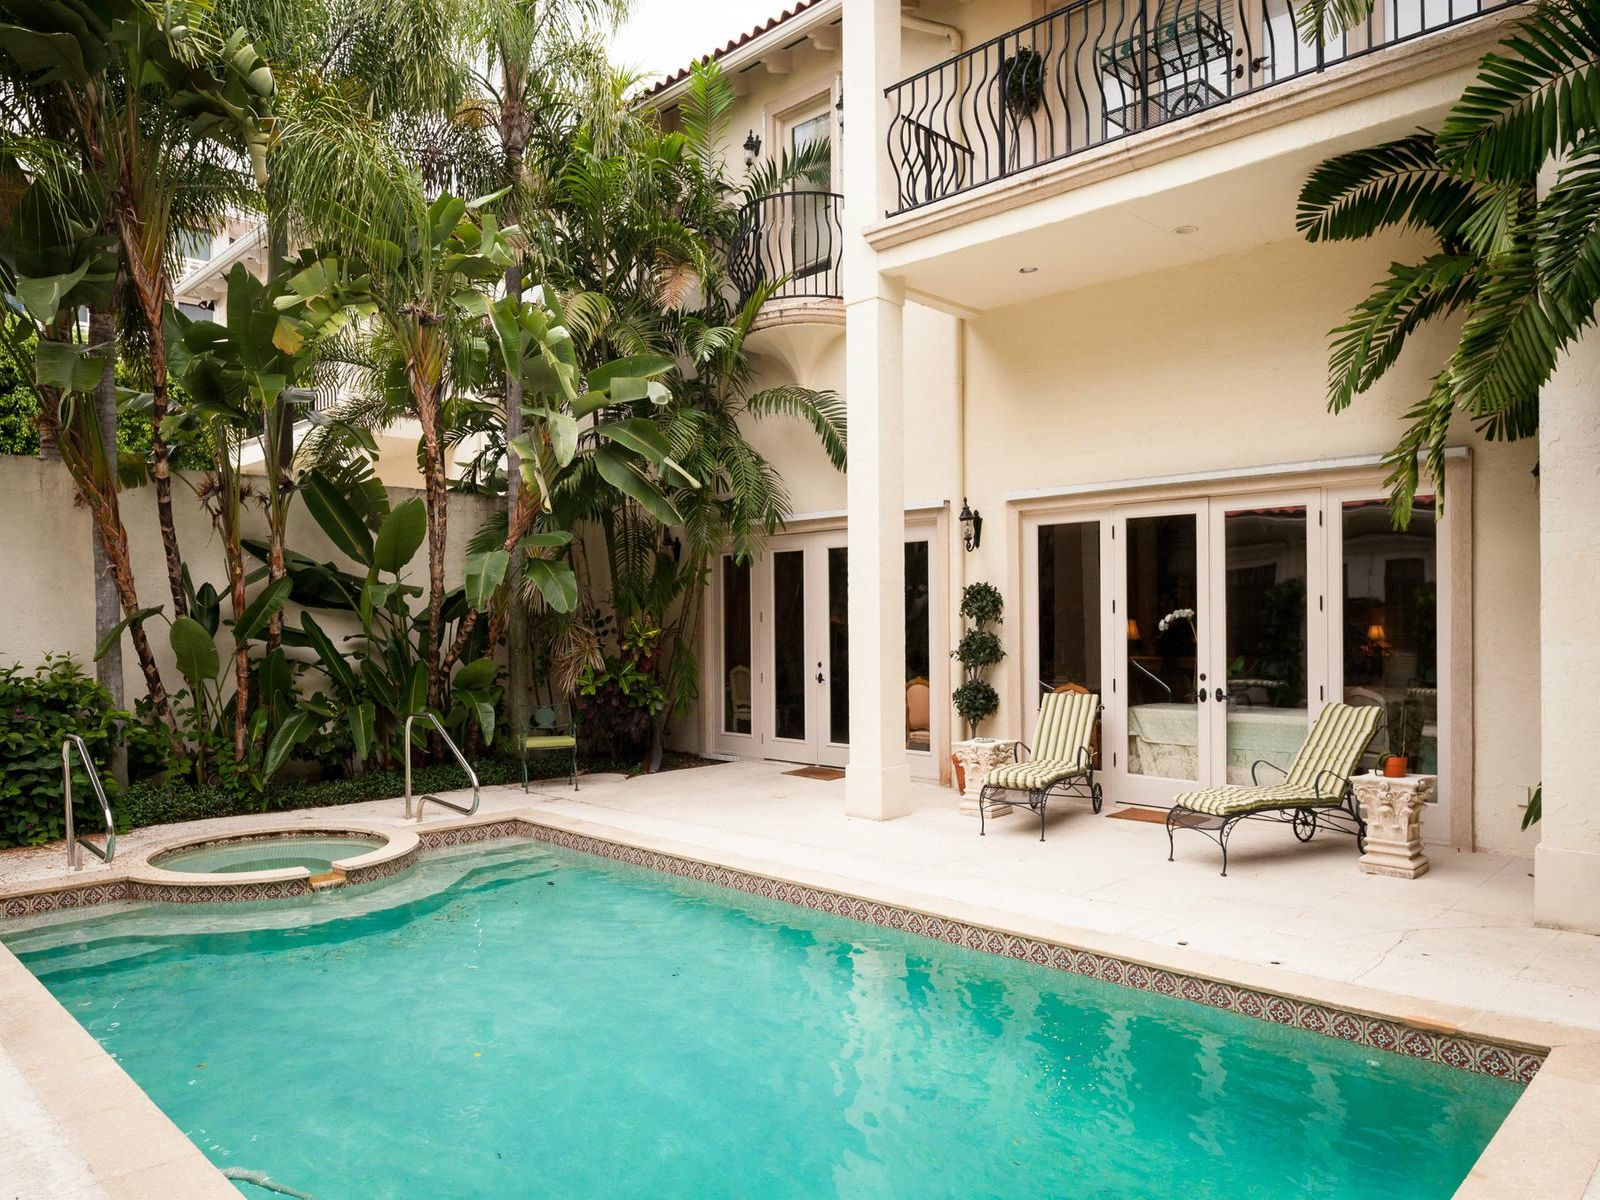 175 Sunset Ave, Palm Beach FL Townhouse - Palm Beach Real Estate